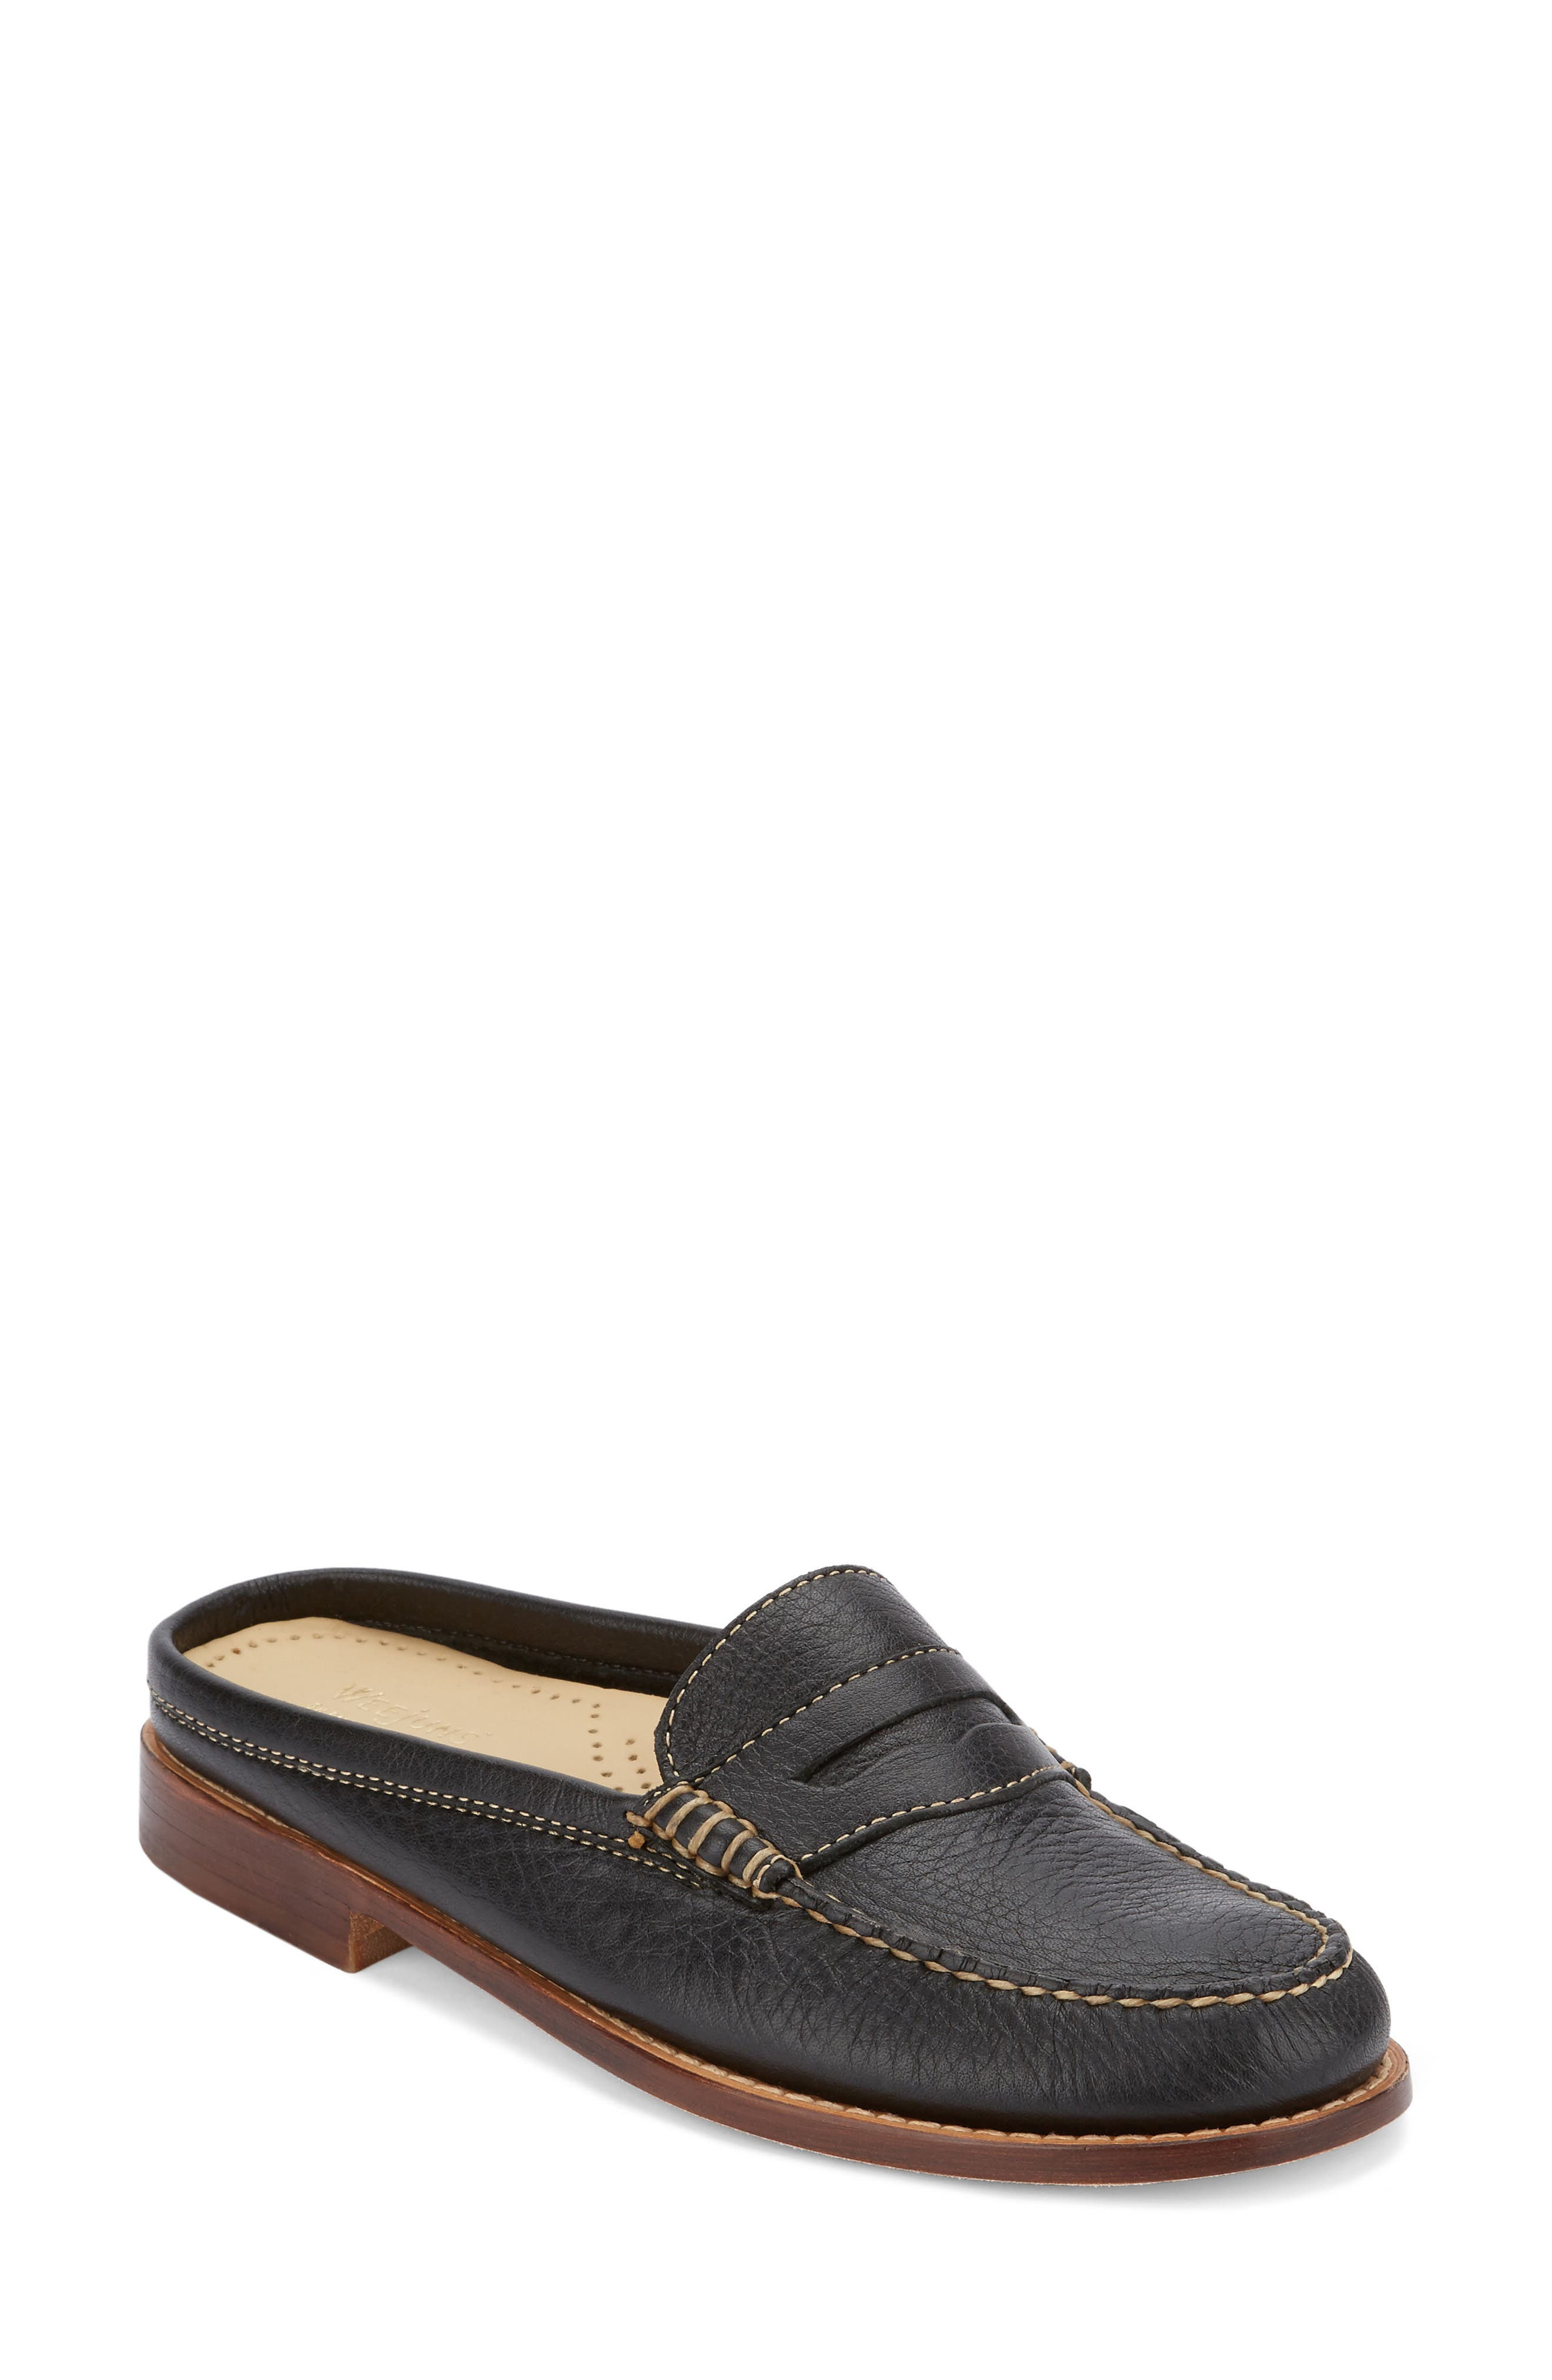 Wynn Loafer Mule,                             Main thumbnail 1, color,                             002